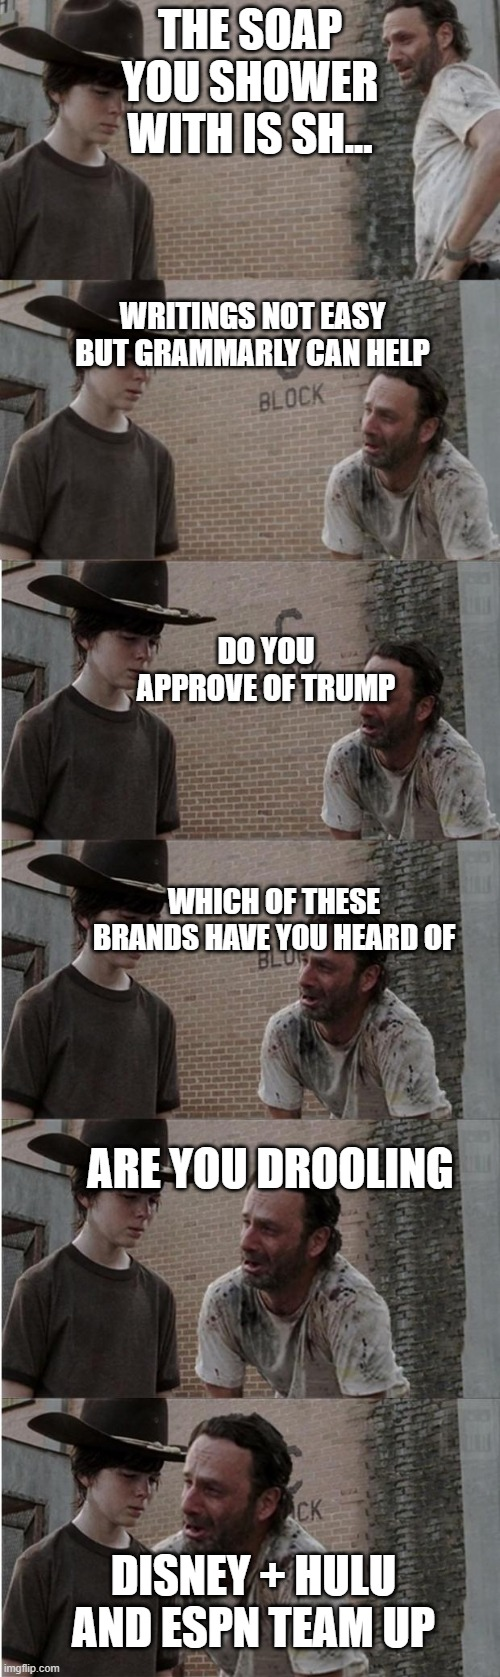 Youtube ads |  THE SOAP YOU SHOWER WITH IS SH... WRITINGS NOT EASY BUT GRAMMARLY CAN HELP; DO YOU APPROVE OF TRUMP; WHICH OF THESE BRANDS HAVE YOU HEARD OF; ARE YOU DROOLING; DISNEY + HULU AND ESPN TEAM UP | image tagged in memes,rick and carl longer,funny | made w/ Imgflip meme maker